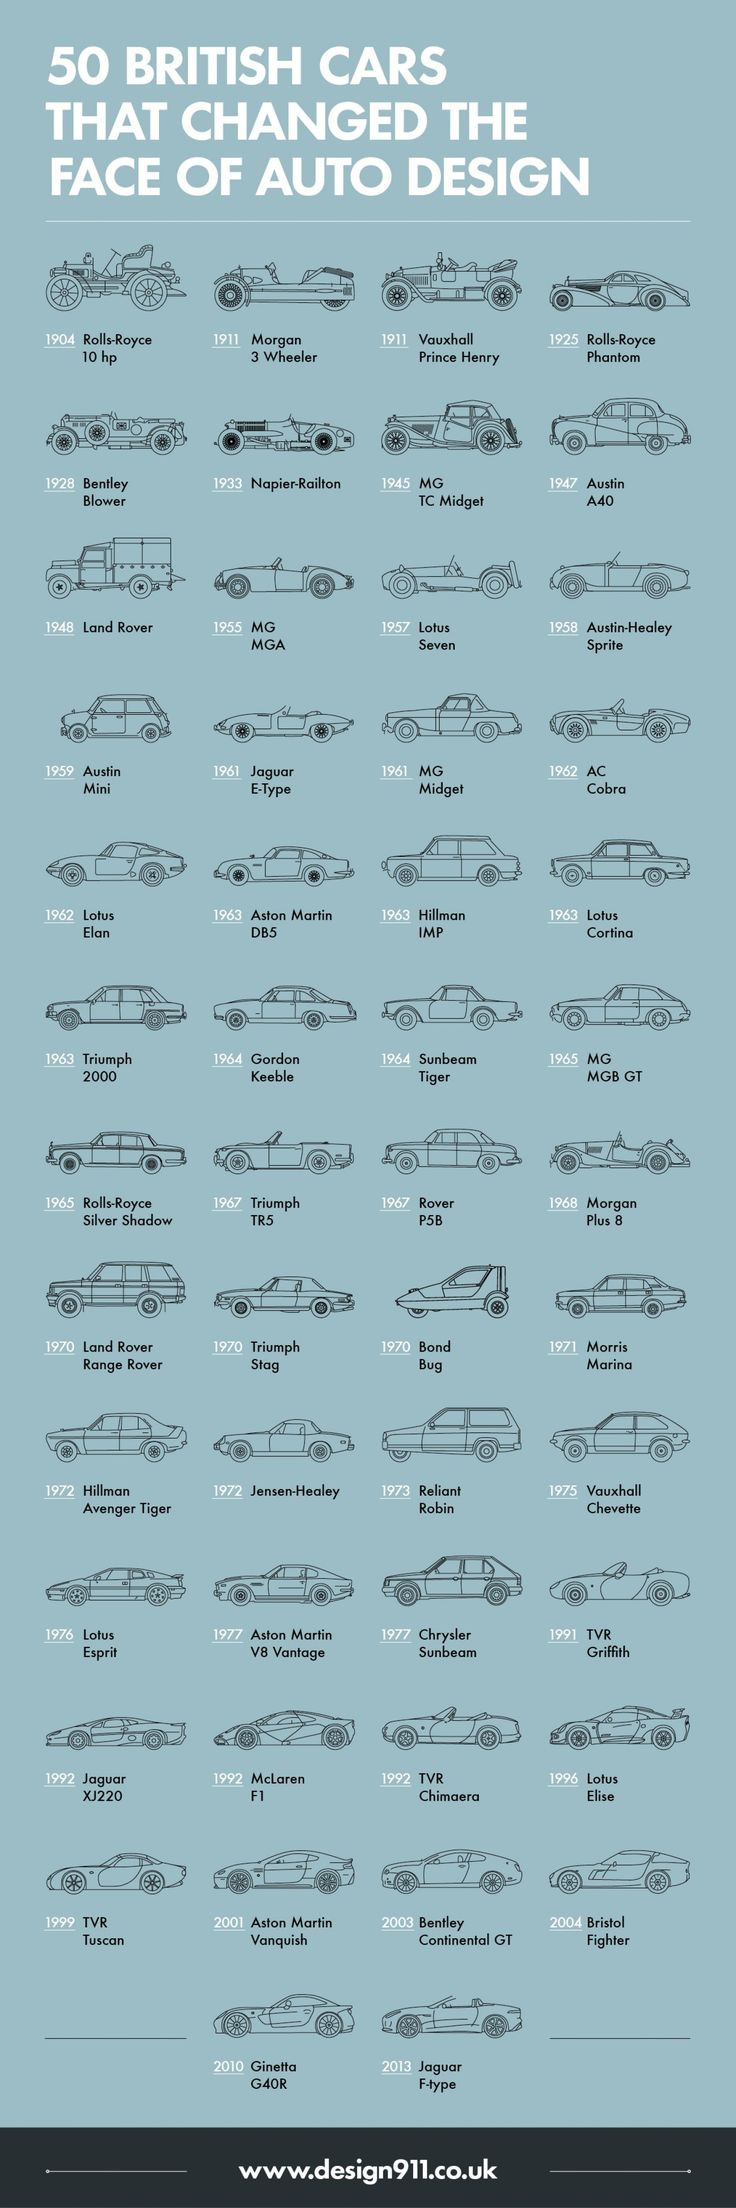 50 British Cars Which Changed The Face of Auto Design Infographic